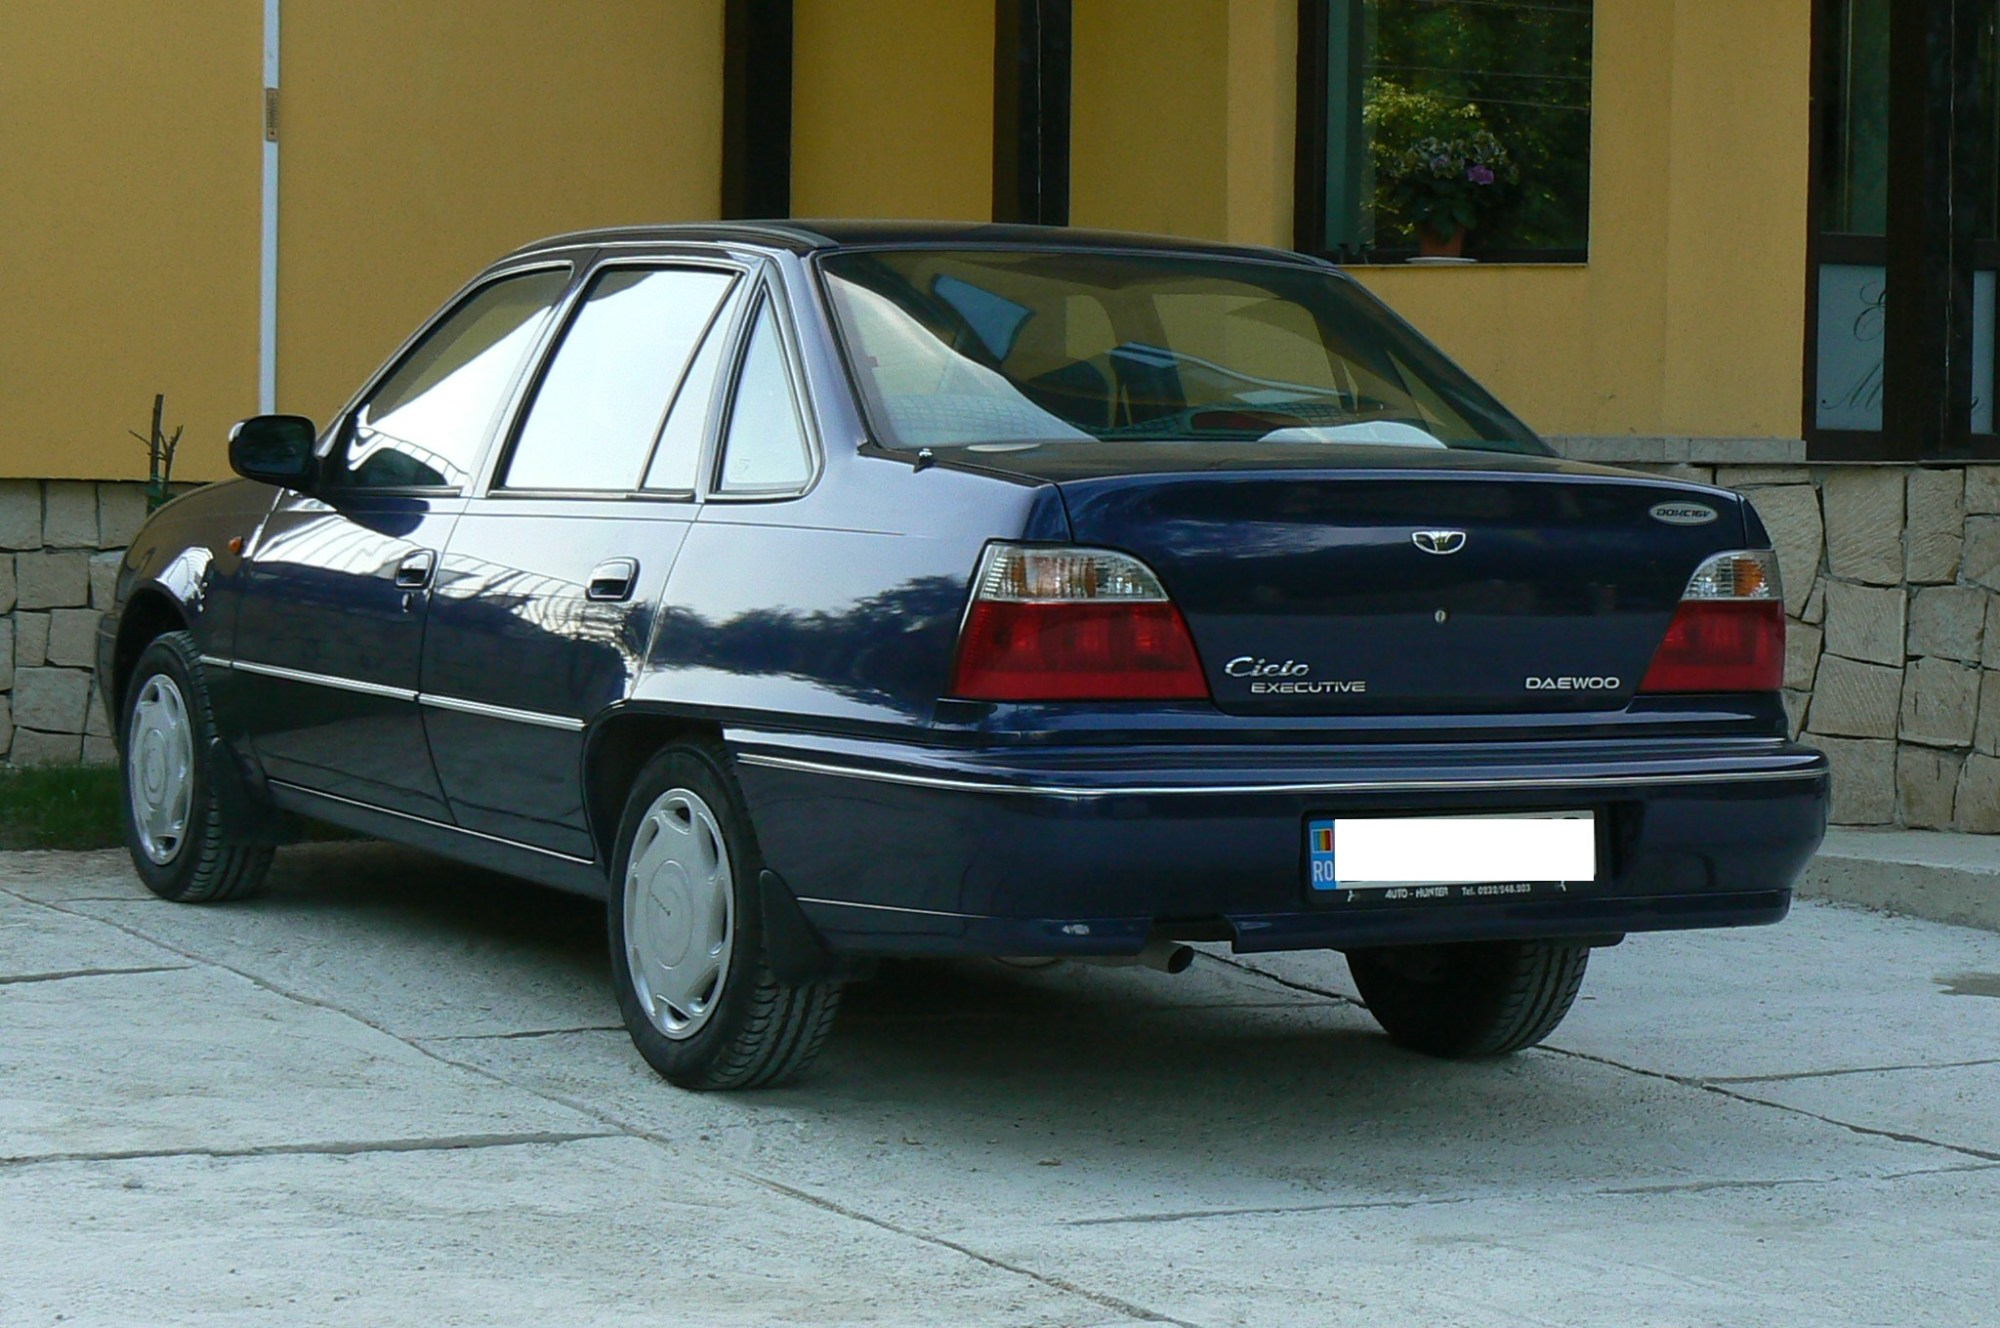 hight resolution of file daewoo cielo executive built in romania equipped with the a15mf 16valve engine